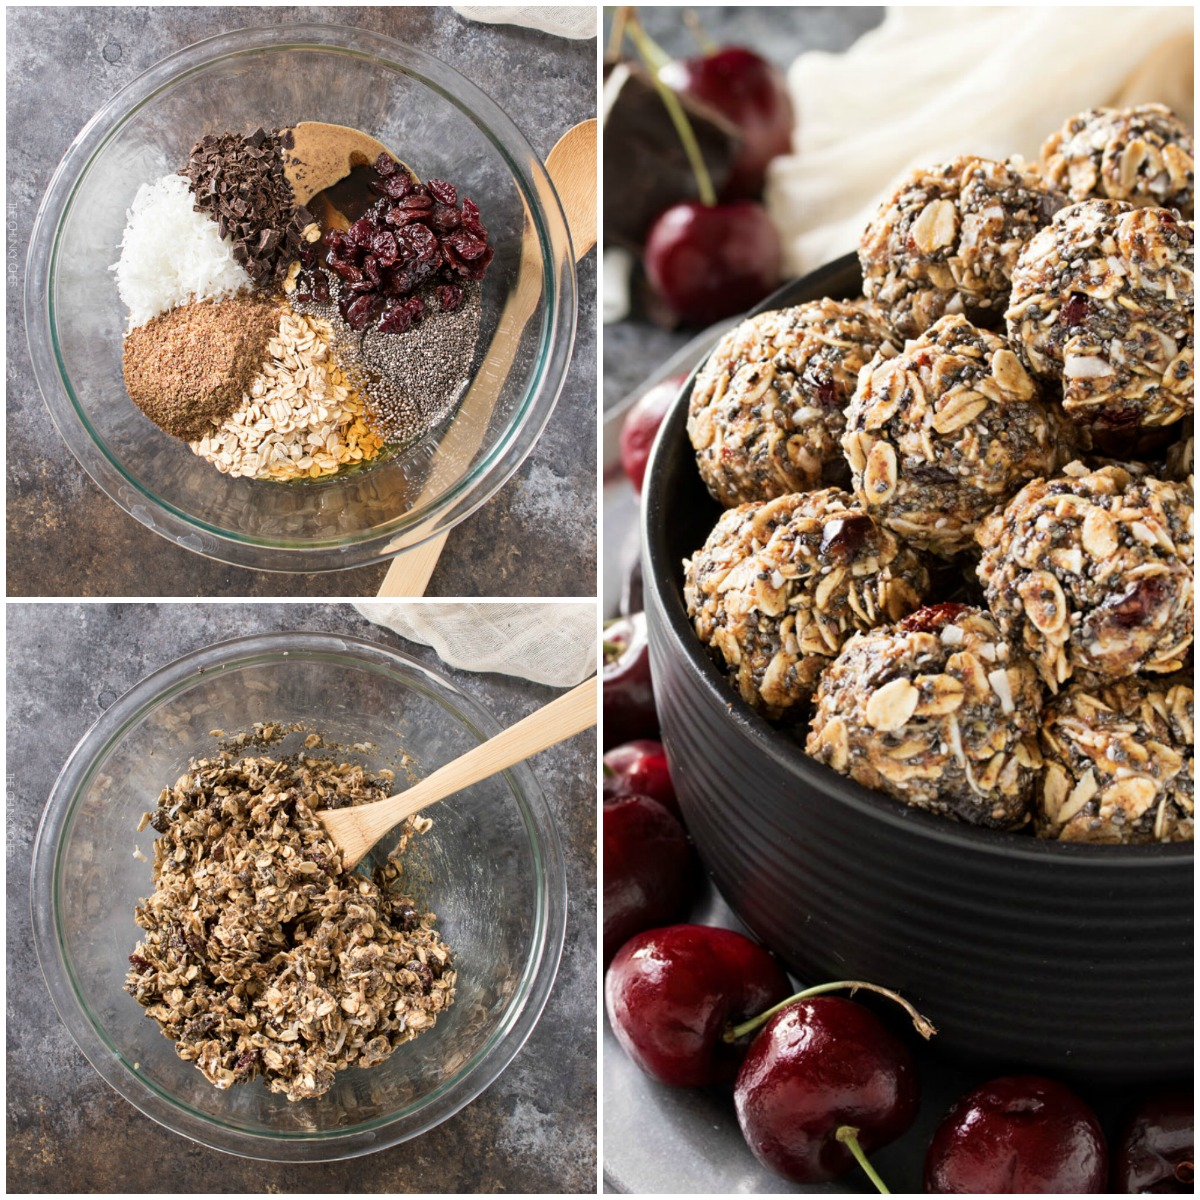 Cherry Chocolate Almond Energy Balls - Easy to make and so satisfying!